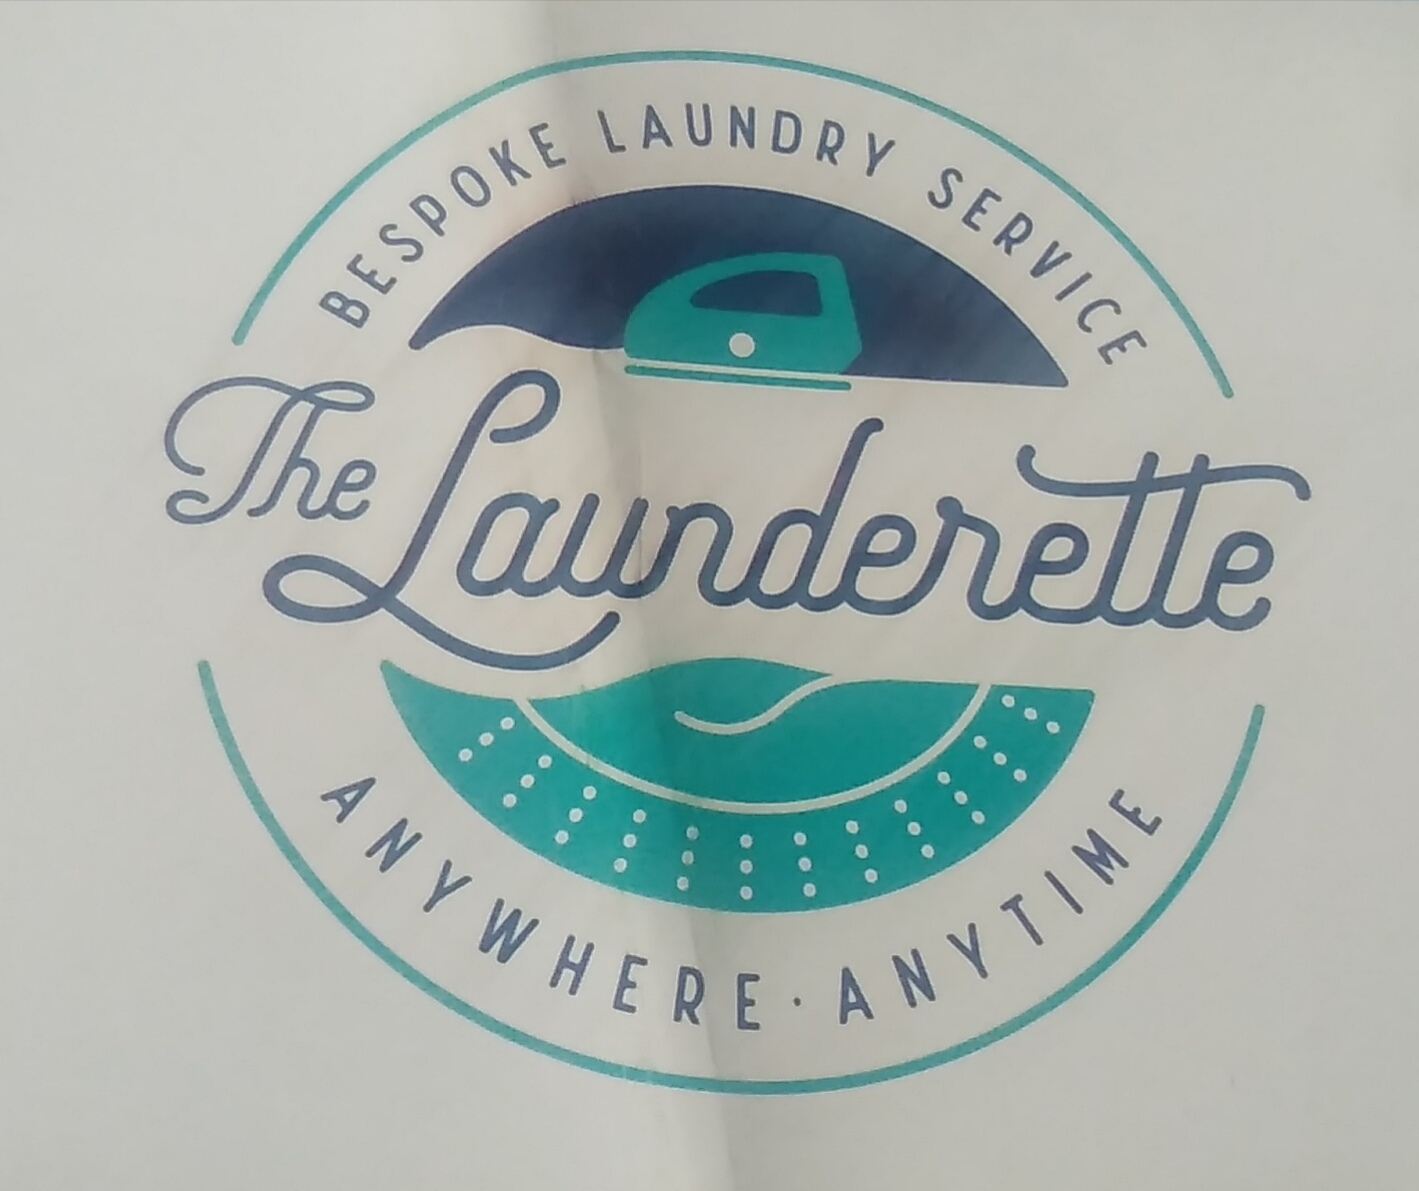 The Launderette Bespoke Laundry Service Laundry and Dry Cleaning Services